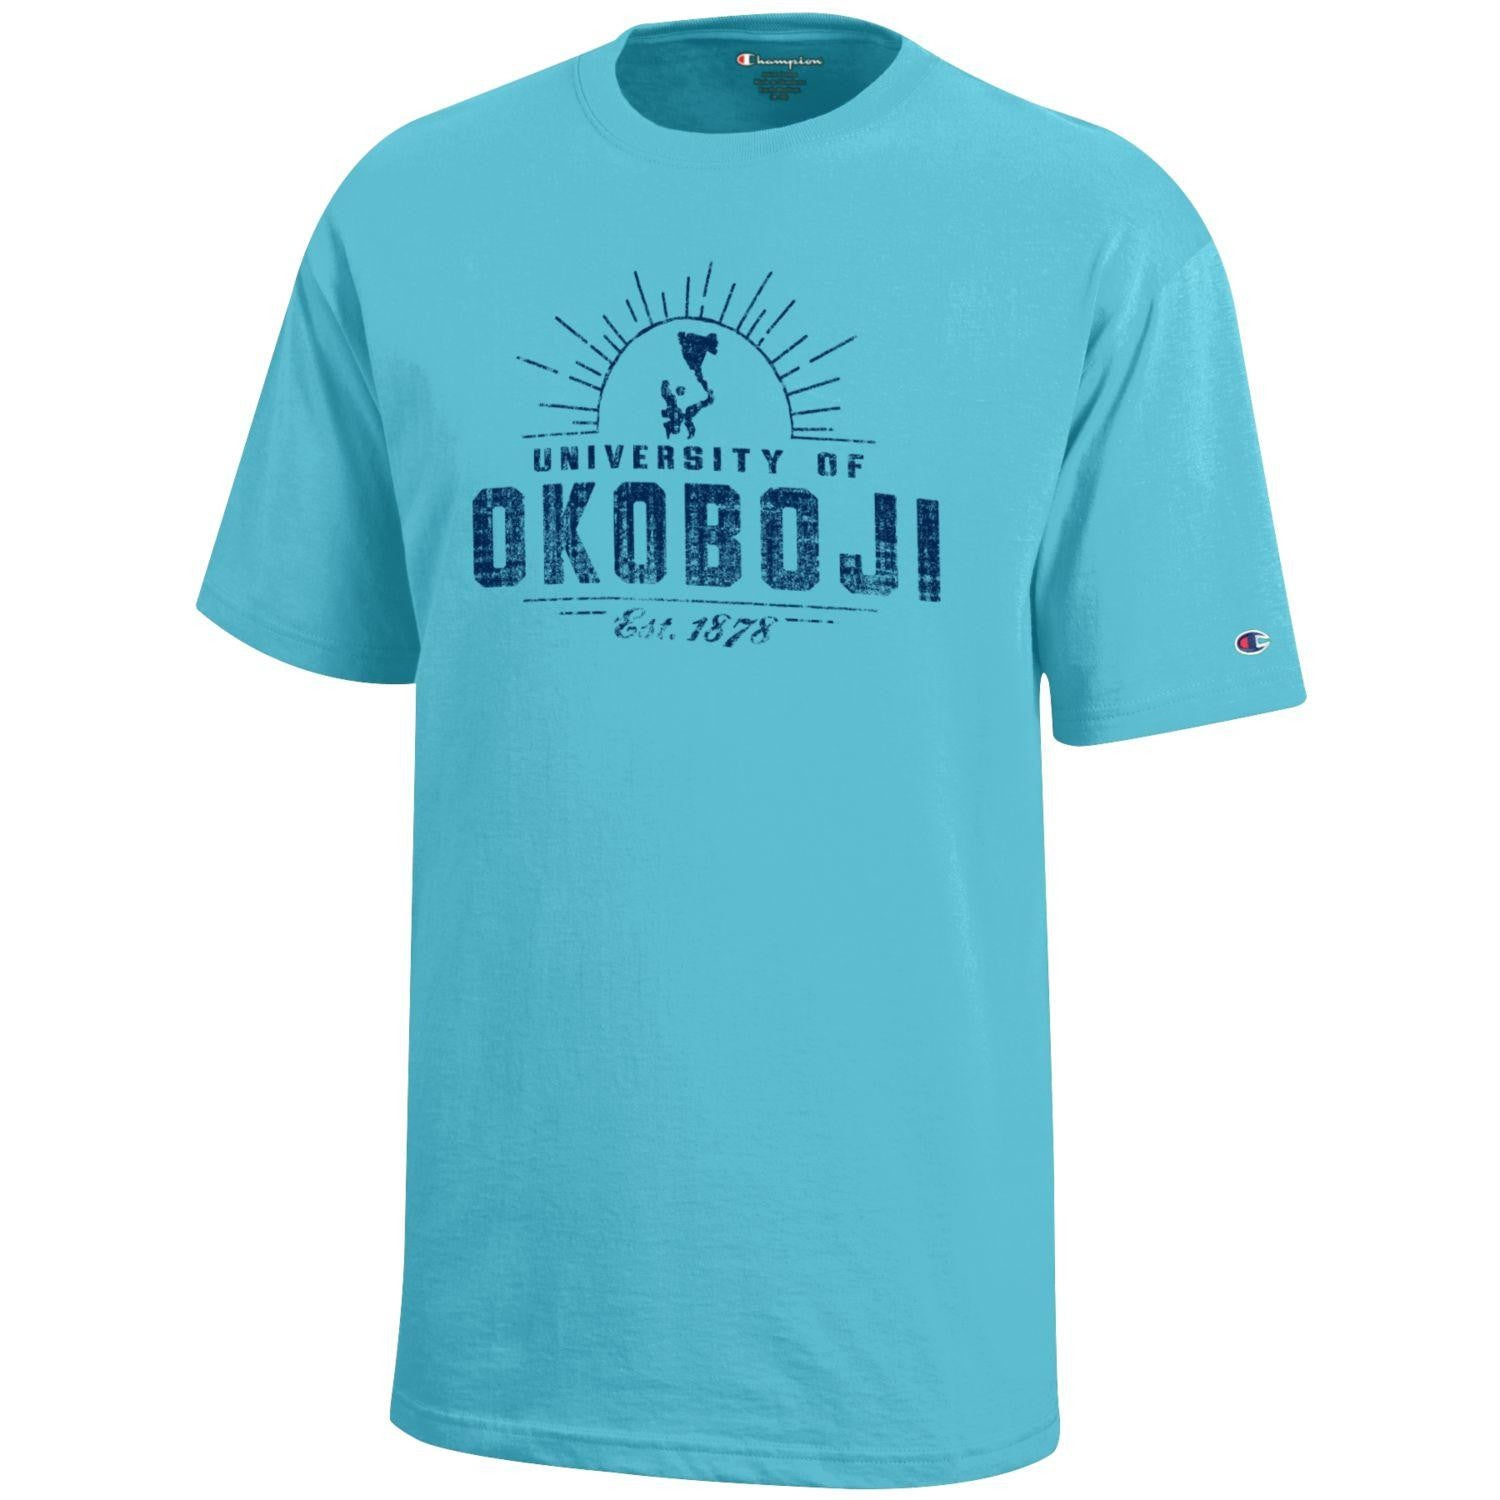 Kids University of Okoboji Campus Sun - Turquoise